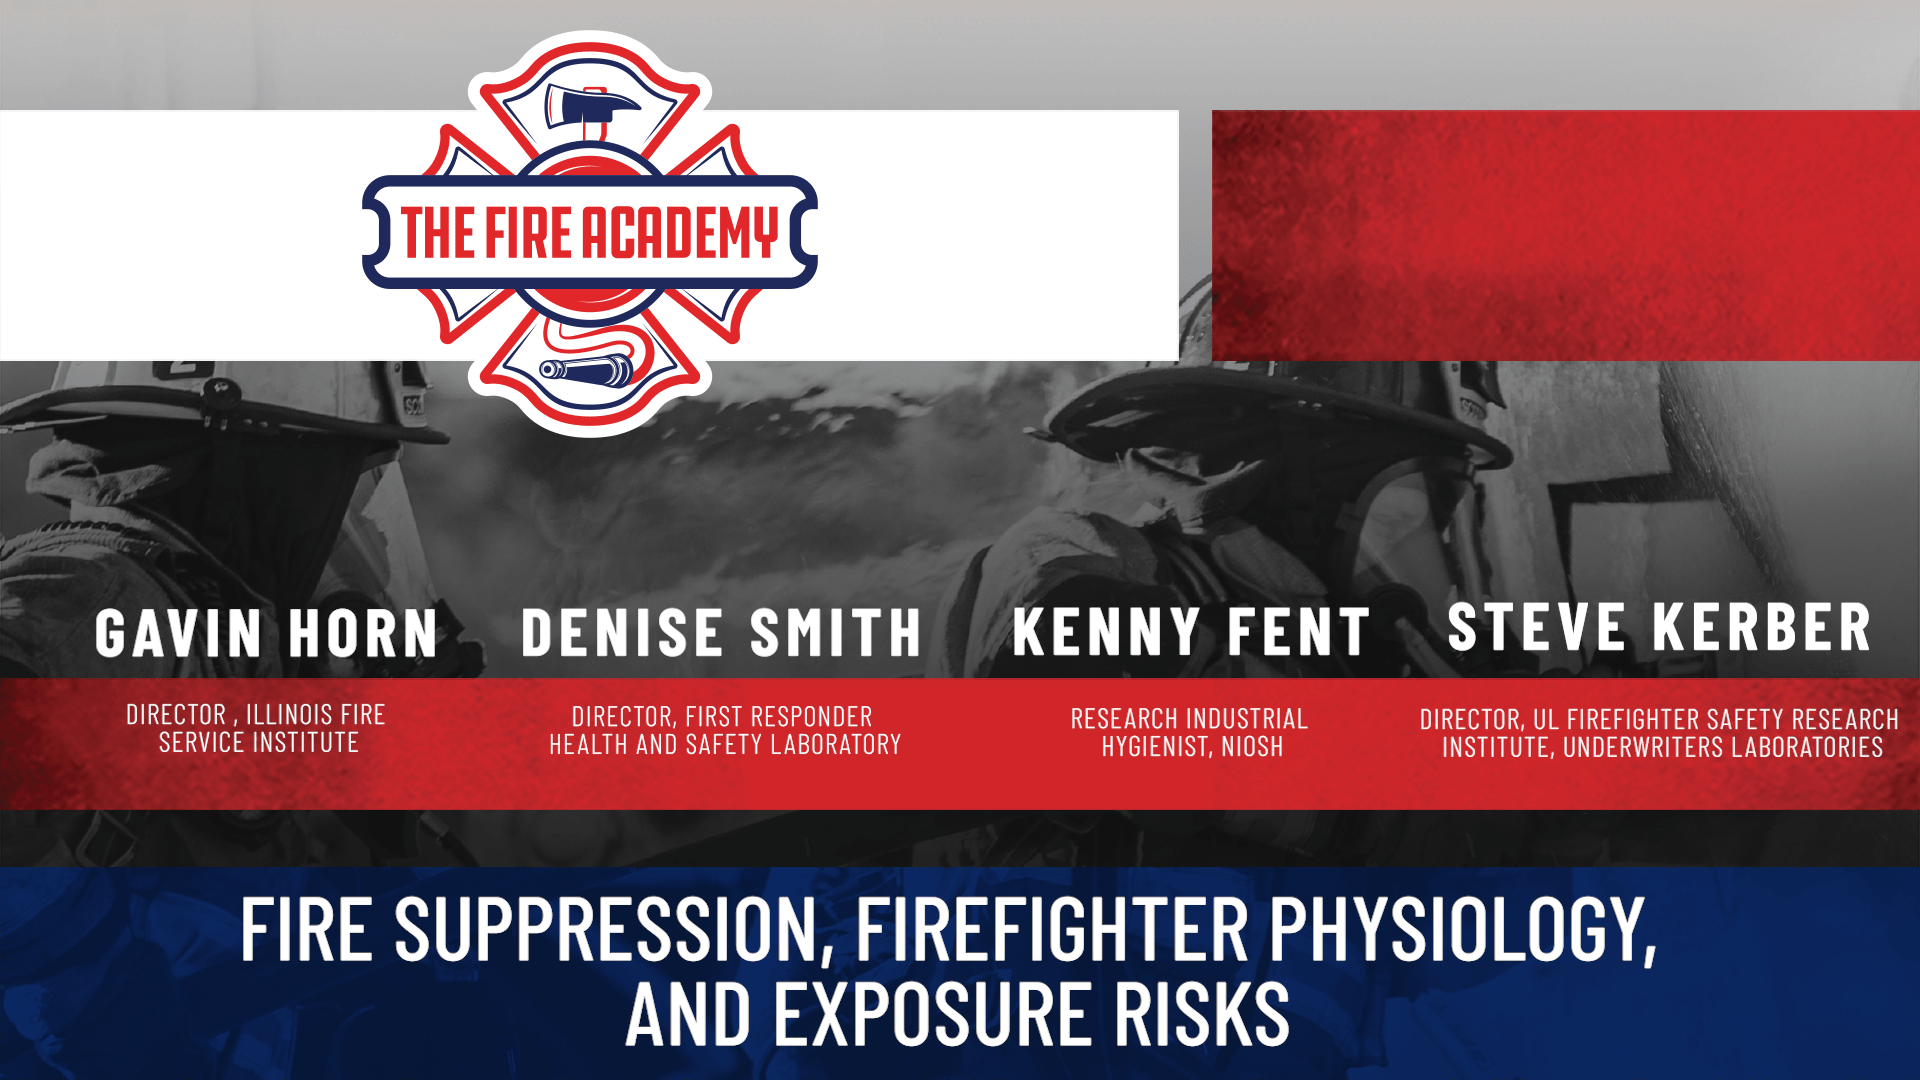 Fire Suppression, Firefighter Physiology, and Exposure Risks